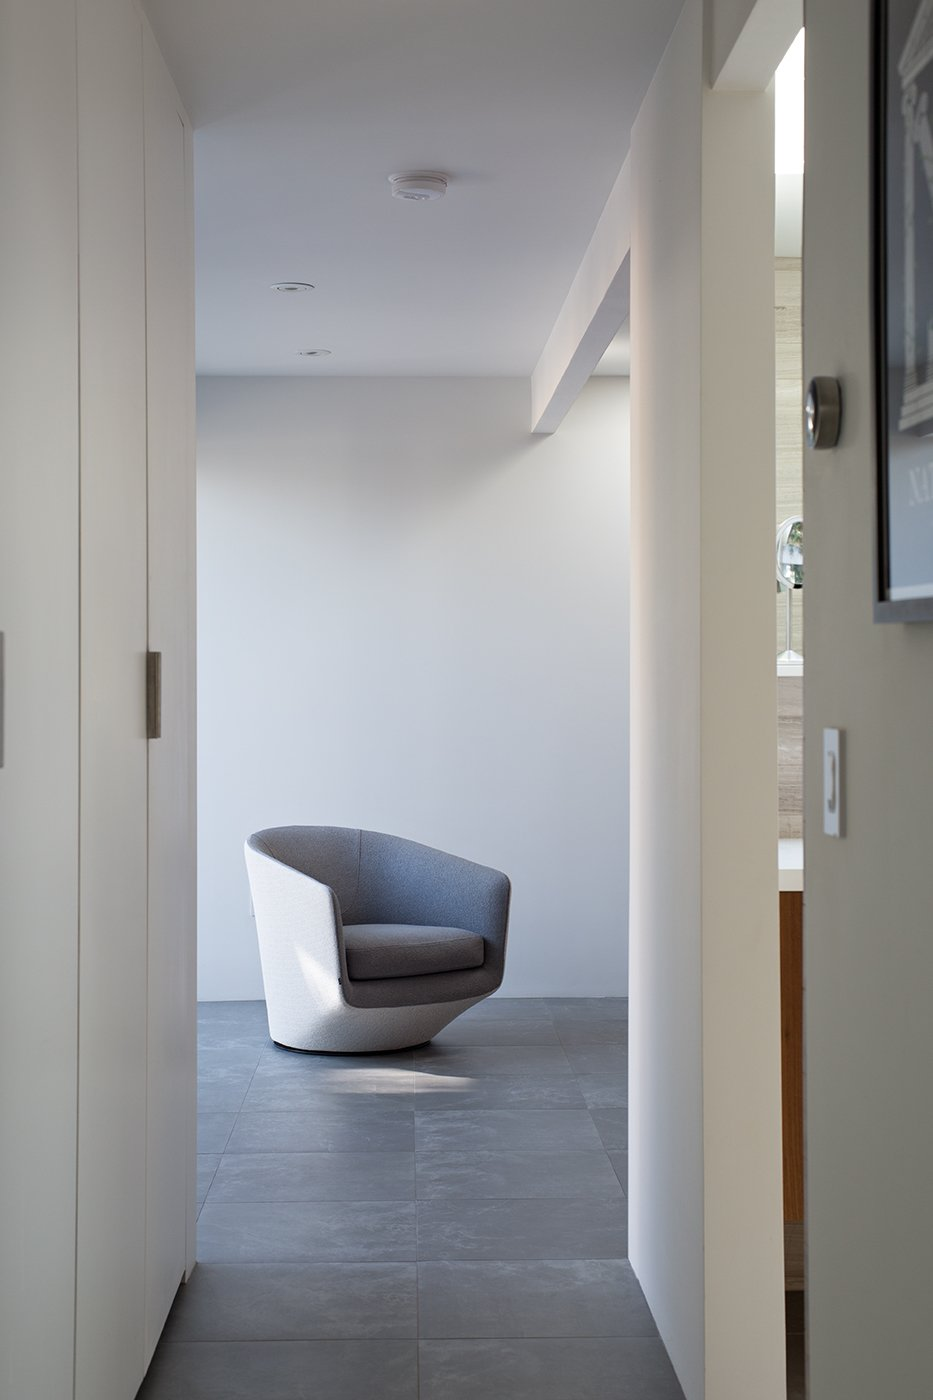 The floors are covered in two-foot square Nextra Piombo tiles by Monocibec. A U-Turn chair designed by Niels Bendtsen echoes the crisp, sculptural qualities of the interior spaces. Tagged: Hallway and Porcelain Tile Floor.  100+ Best Modern Seating Designs by Dwell from Indoor-Outdoor Home by a Midcentury Master Gets a Faithful Update